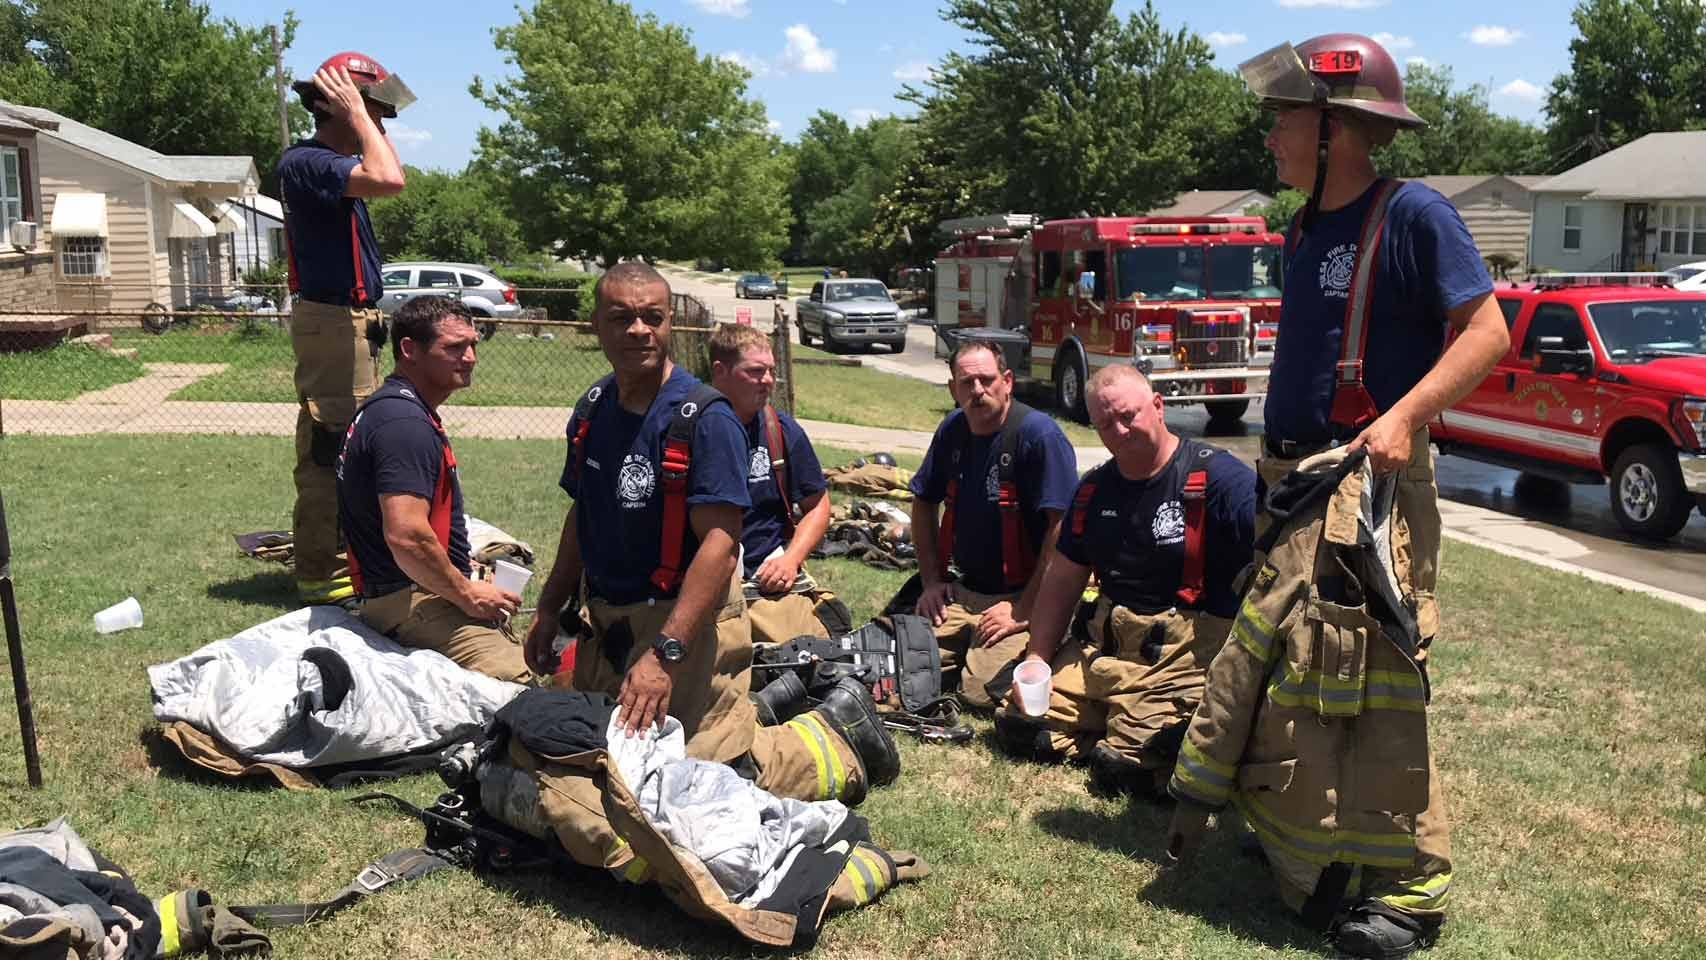 Emory Bryan: Firefighters Battle Heat As Well As Fire